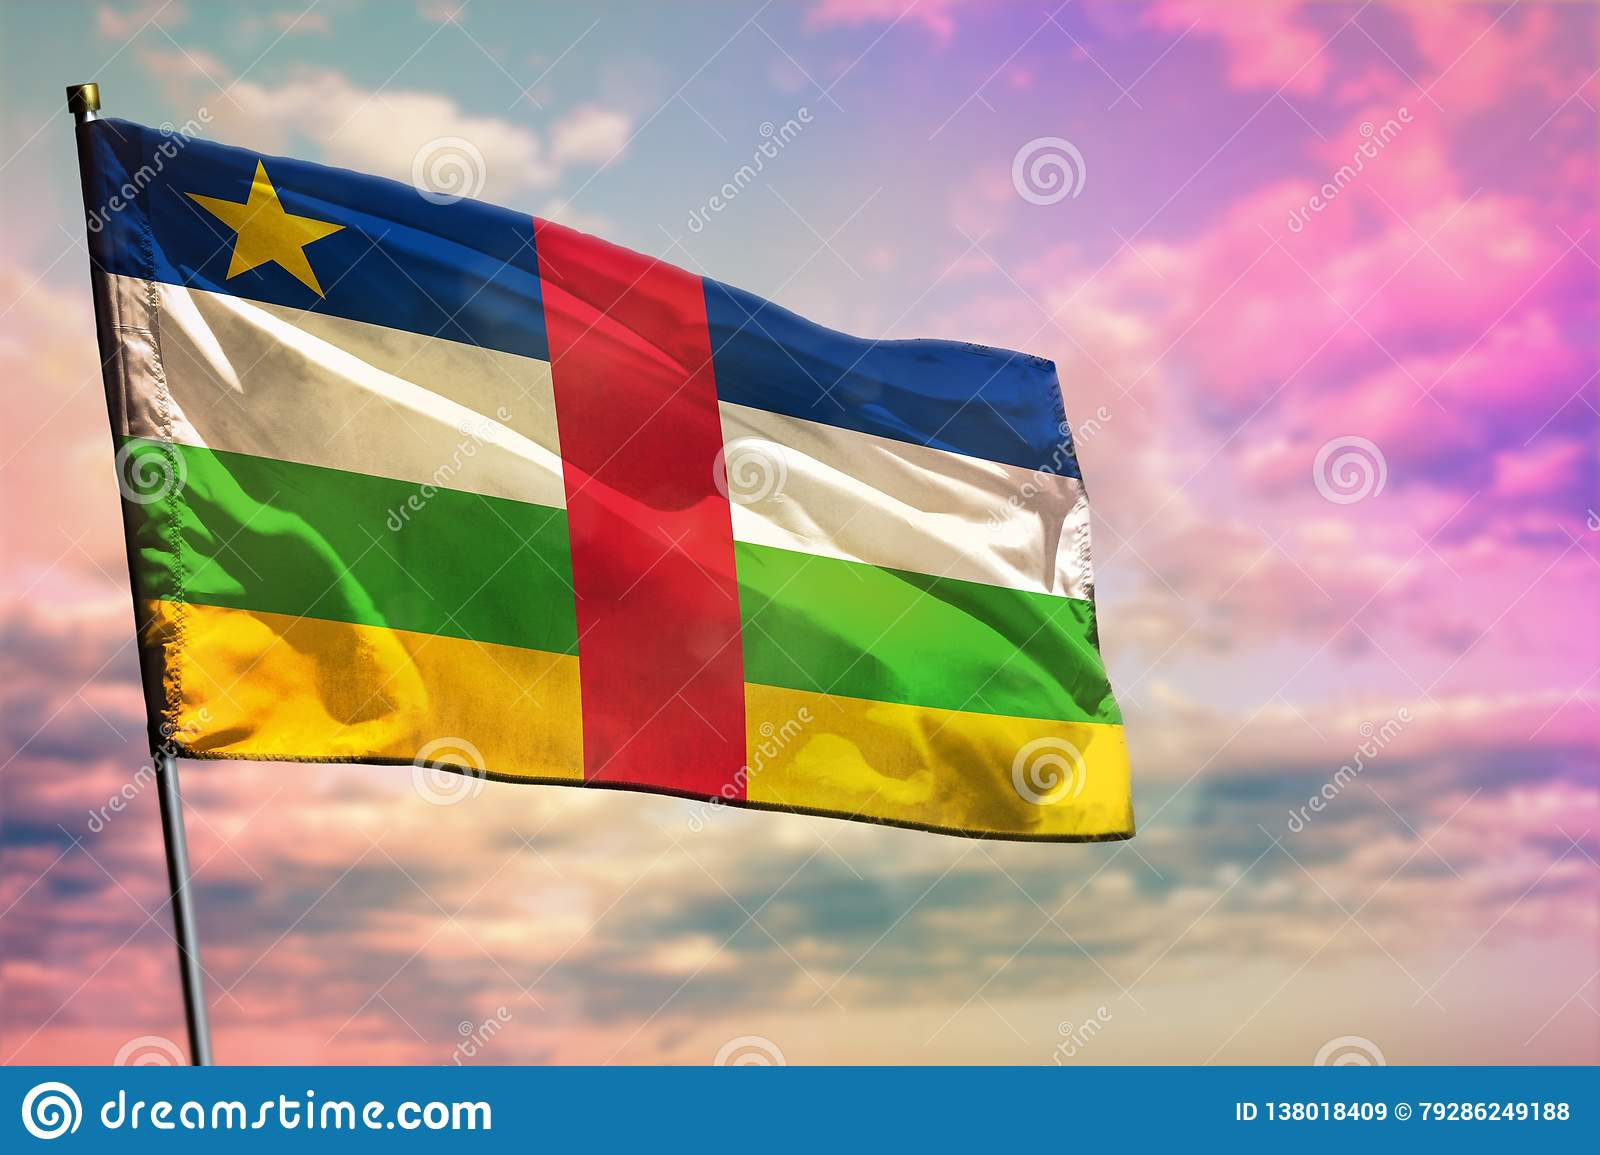 Fluttering Central African Republic flag on colorful cloudy sky background. Prosperity concept